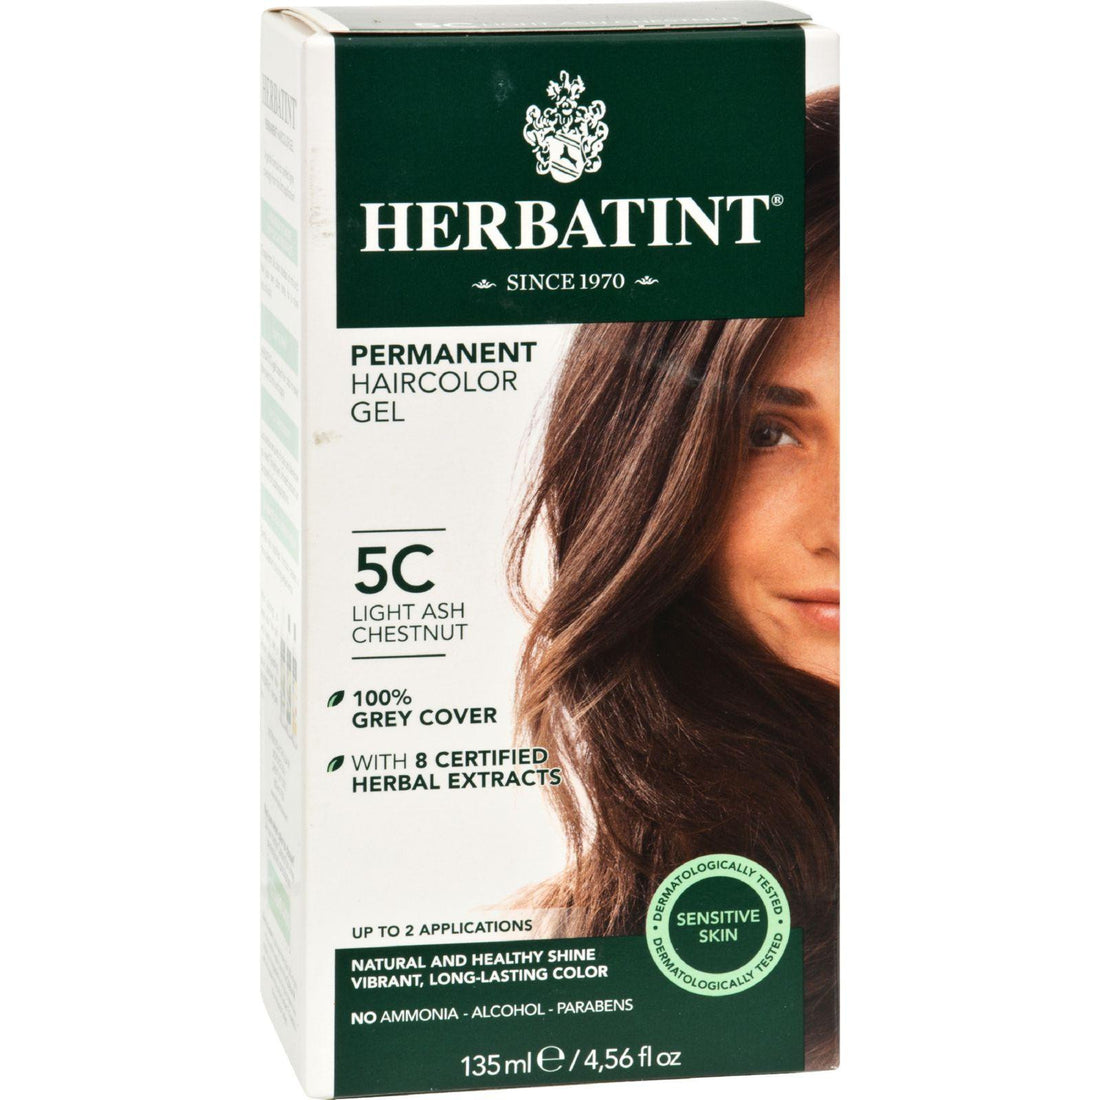 Mother Mantis: Herbatint Permanent Herbal Haircolour Gel 5c Light Ash Chestnut - 135 Ml Herbatint